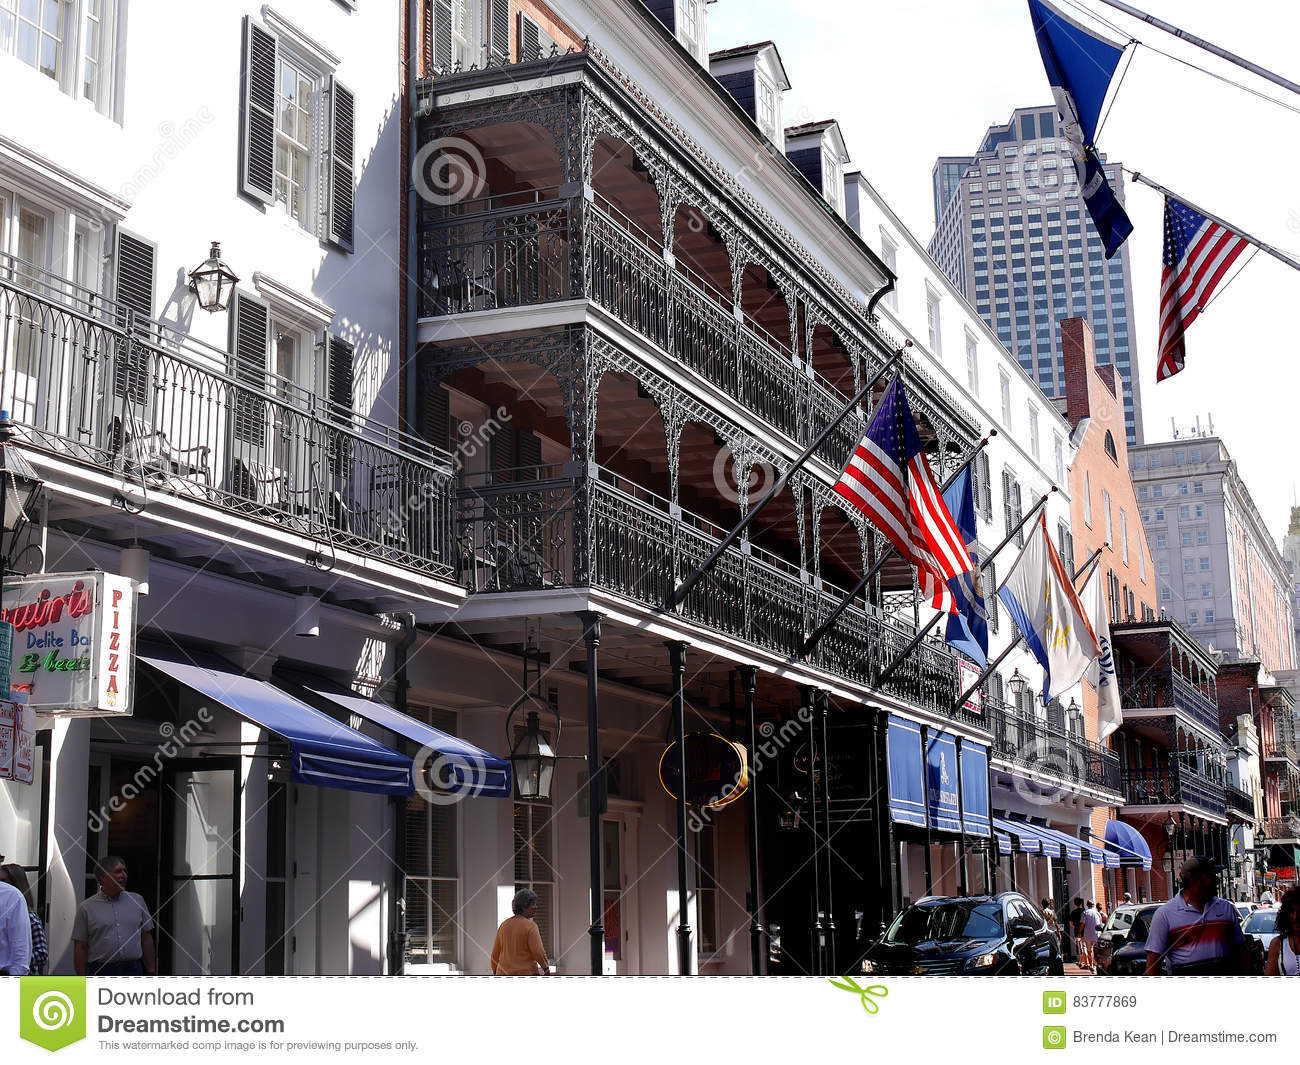 The French Quarter New Orleans A Louisiana City On The Mississippi